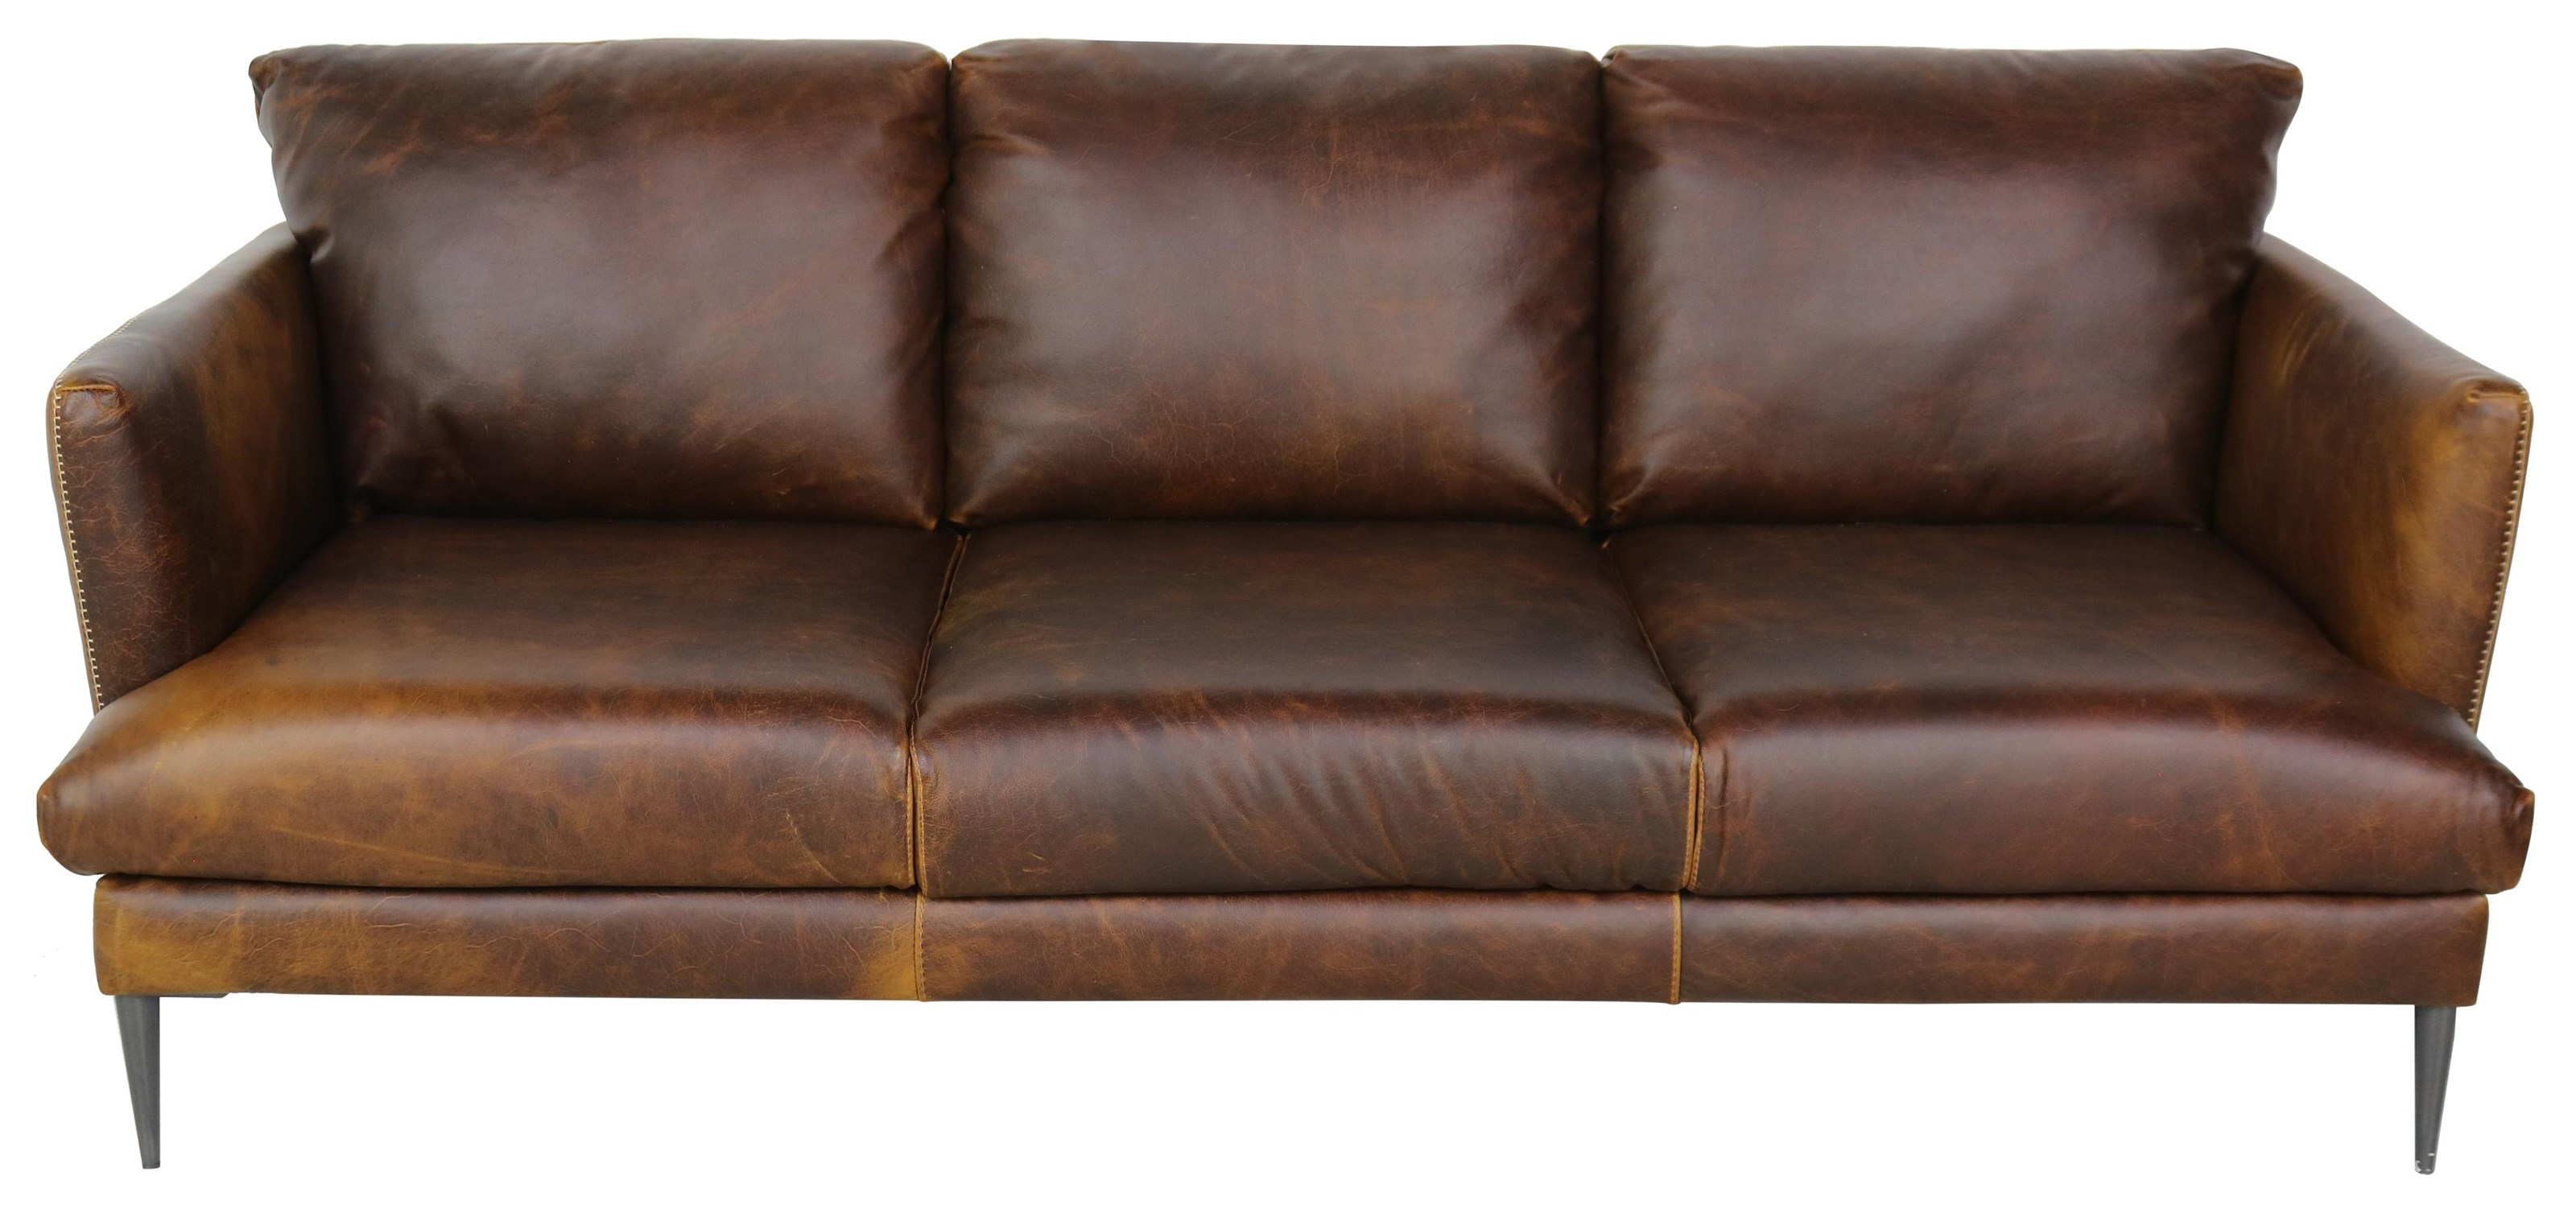 Gio Collection Italian Leather Sofa by Giovanni Leather at Sprintz Furniture